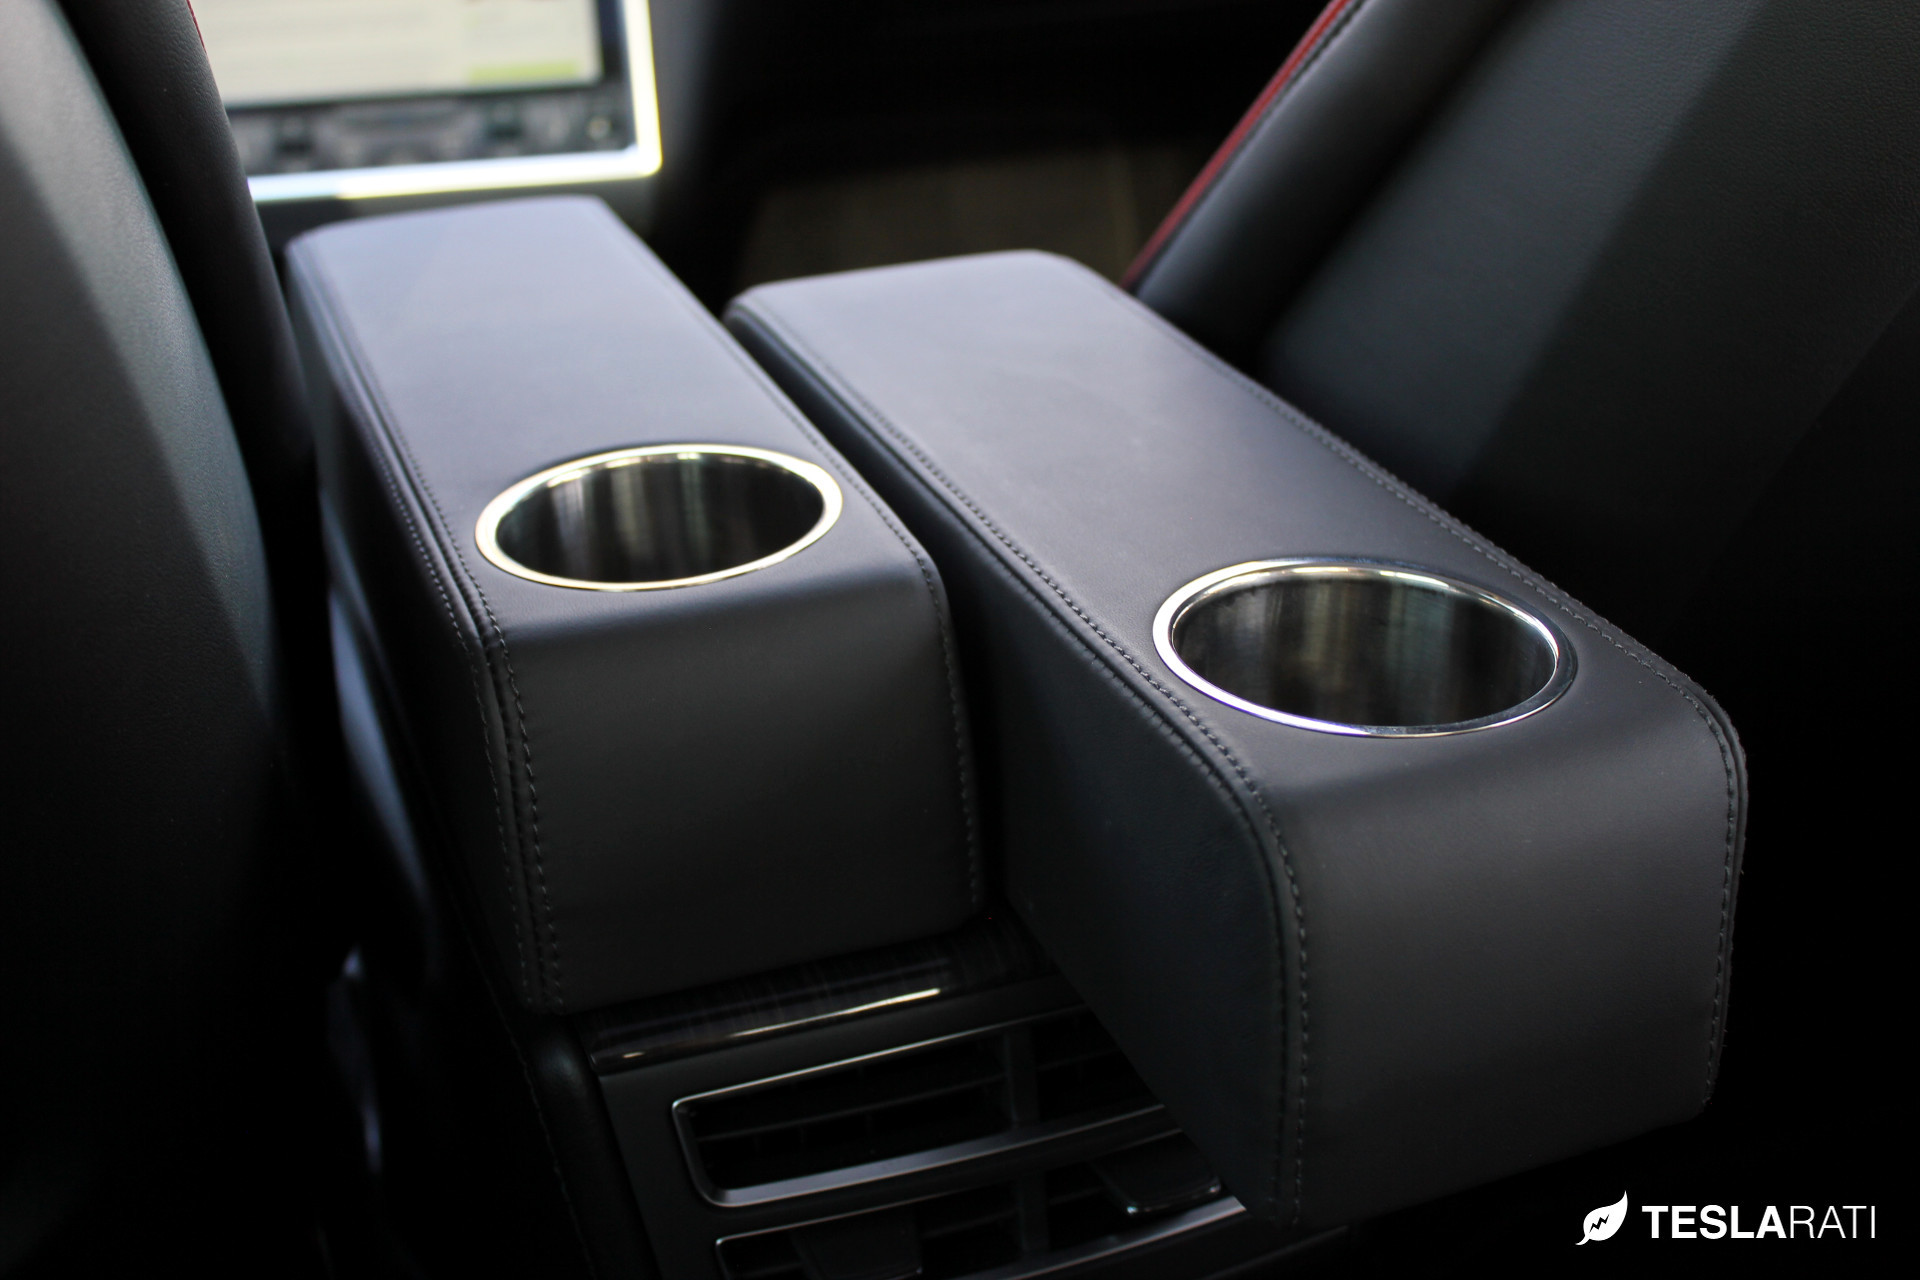 PARZ_Tesla_Rear_Seat_Cup_Holders_9